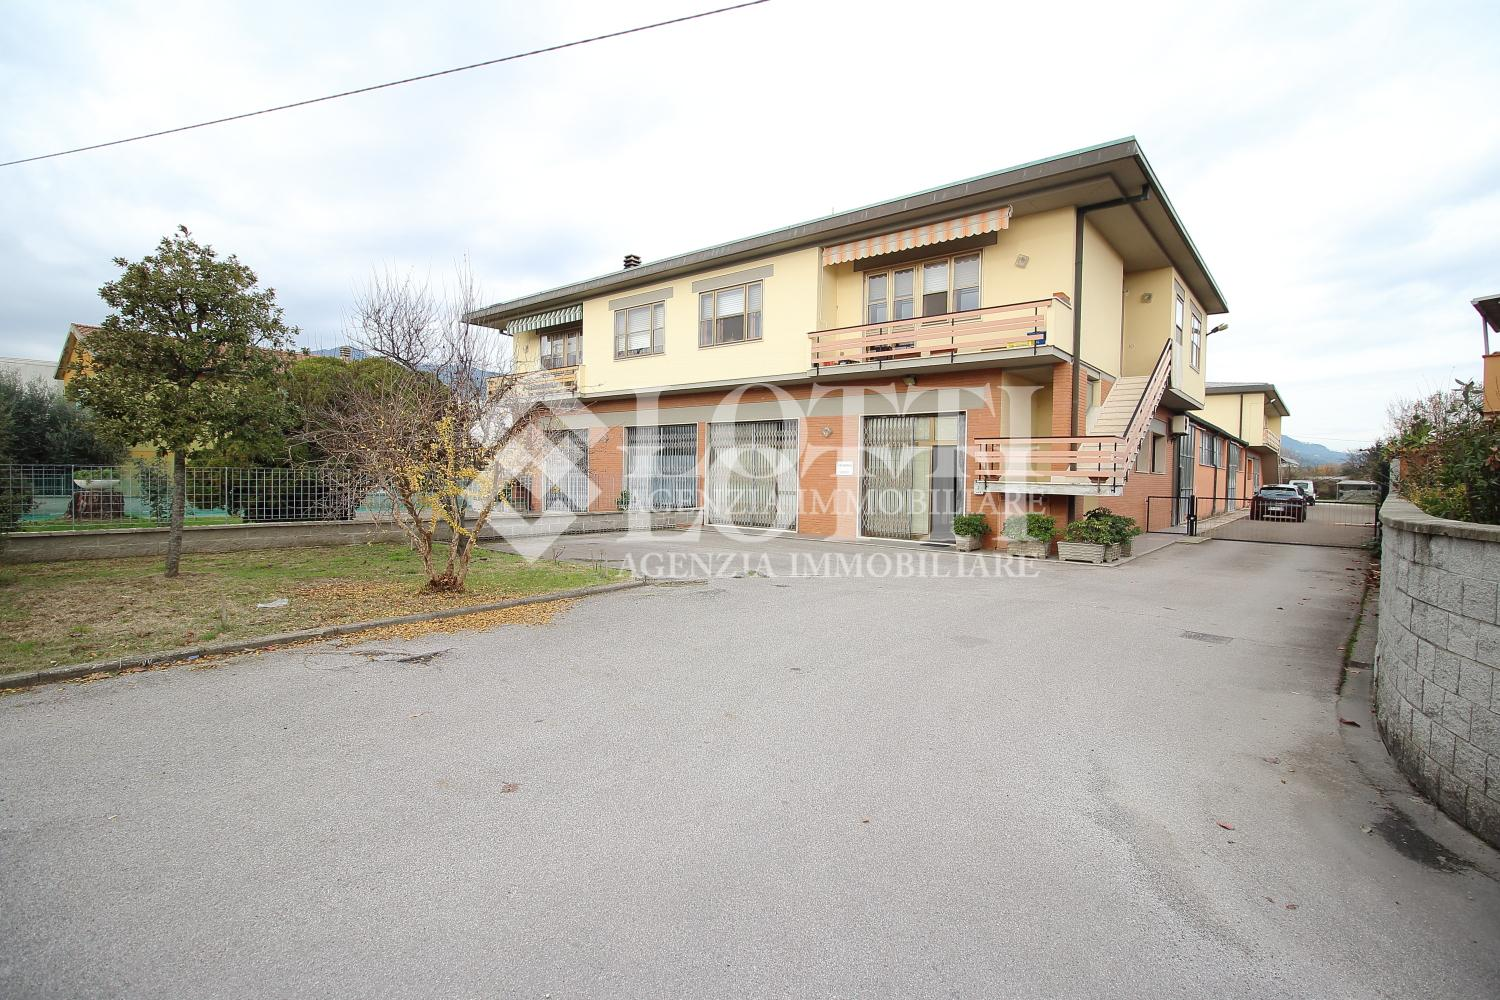 Capannone industriale in affitto commerciale, rif. 583-E